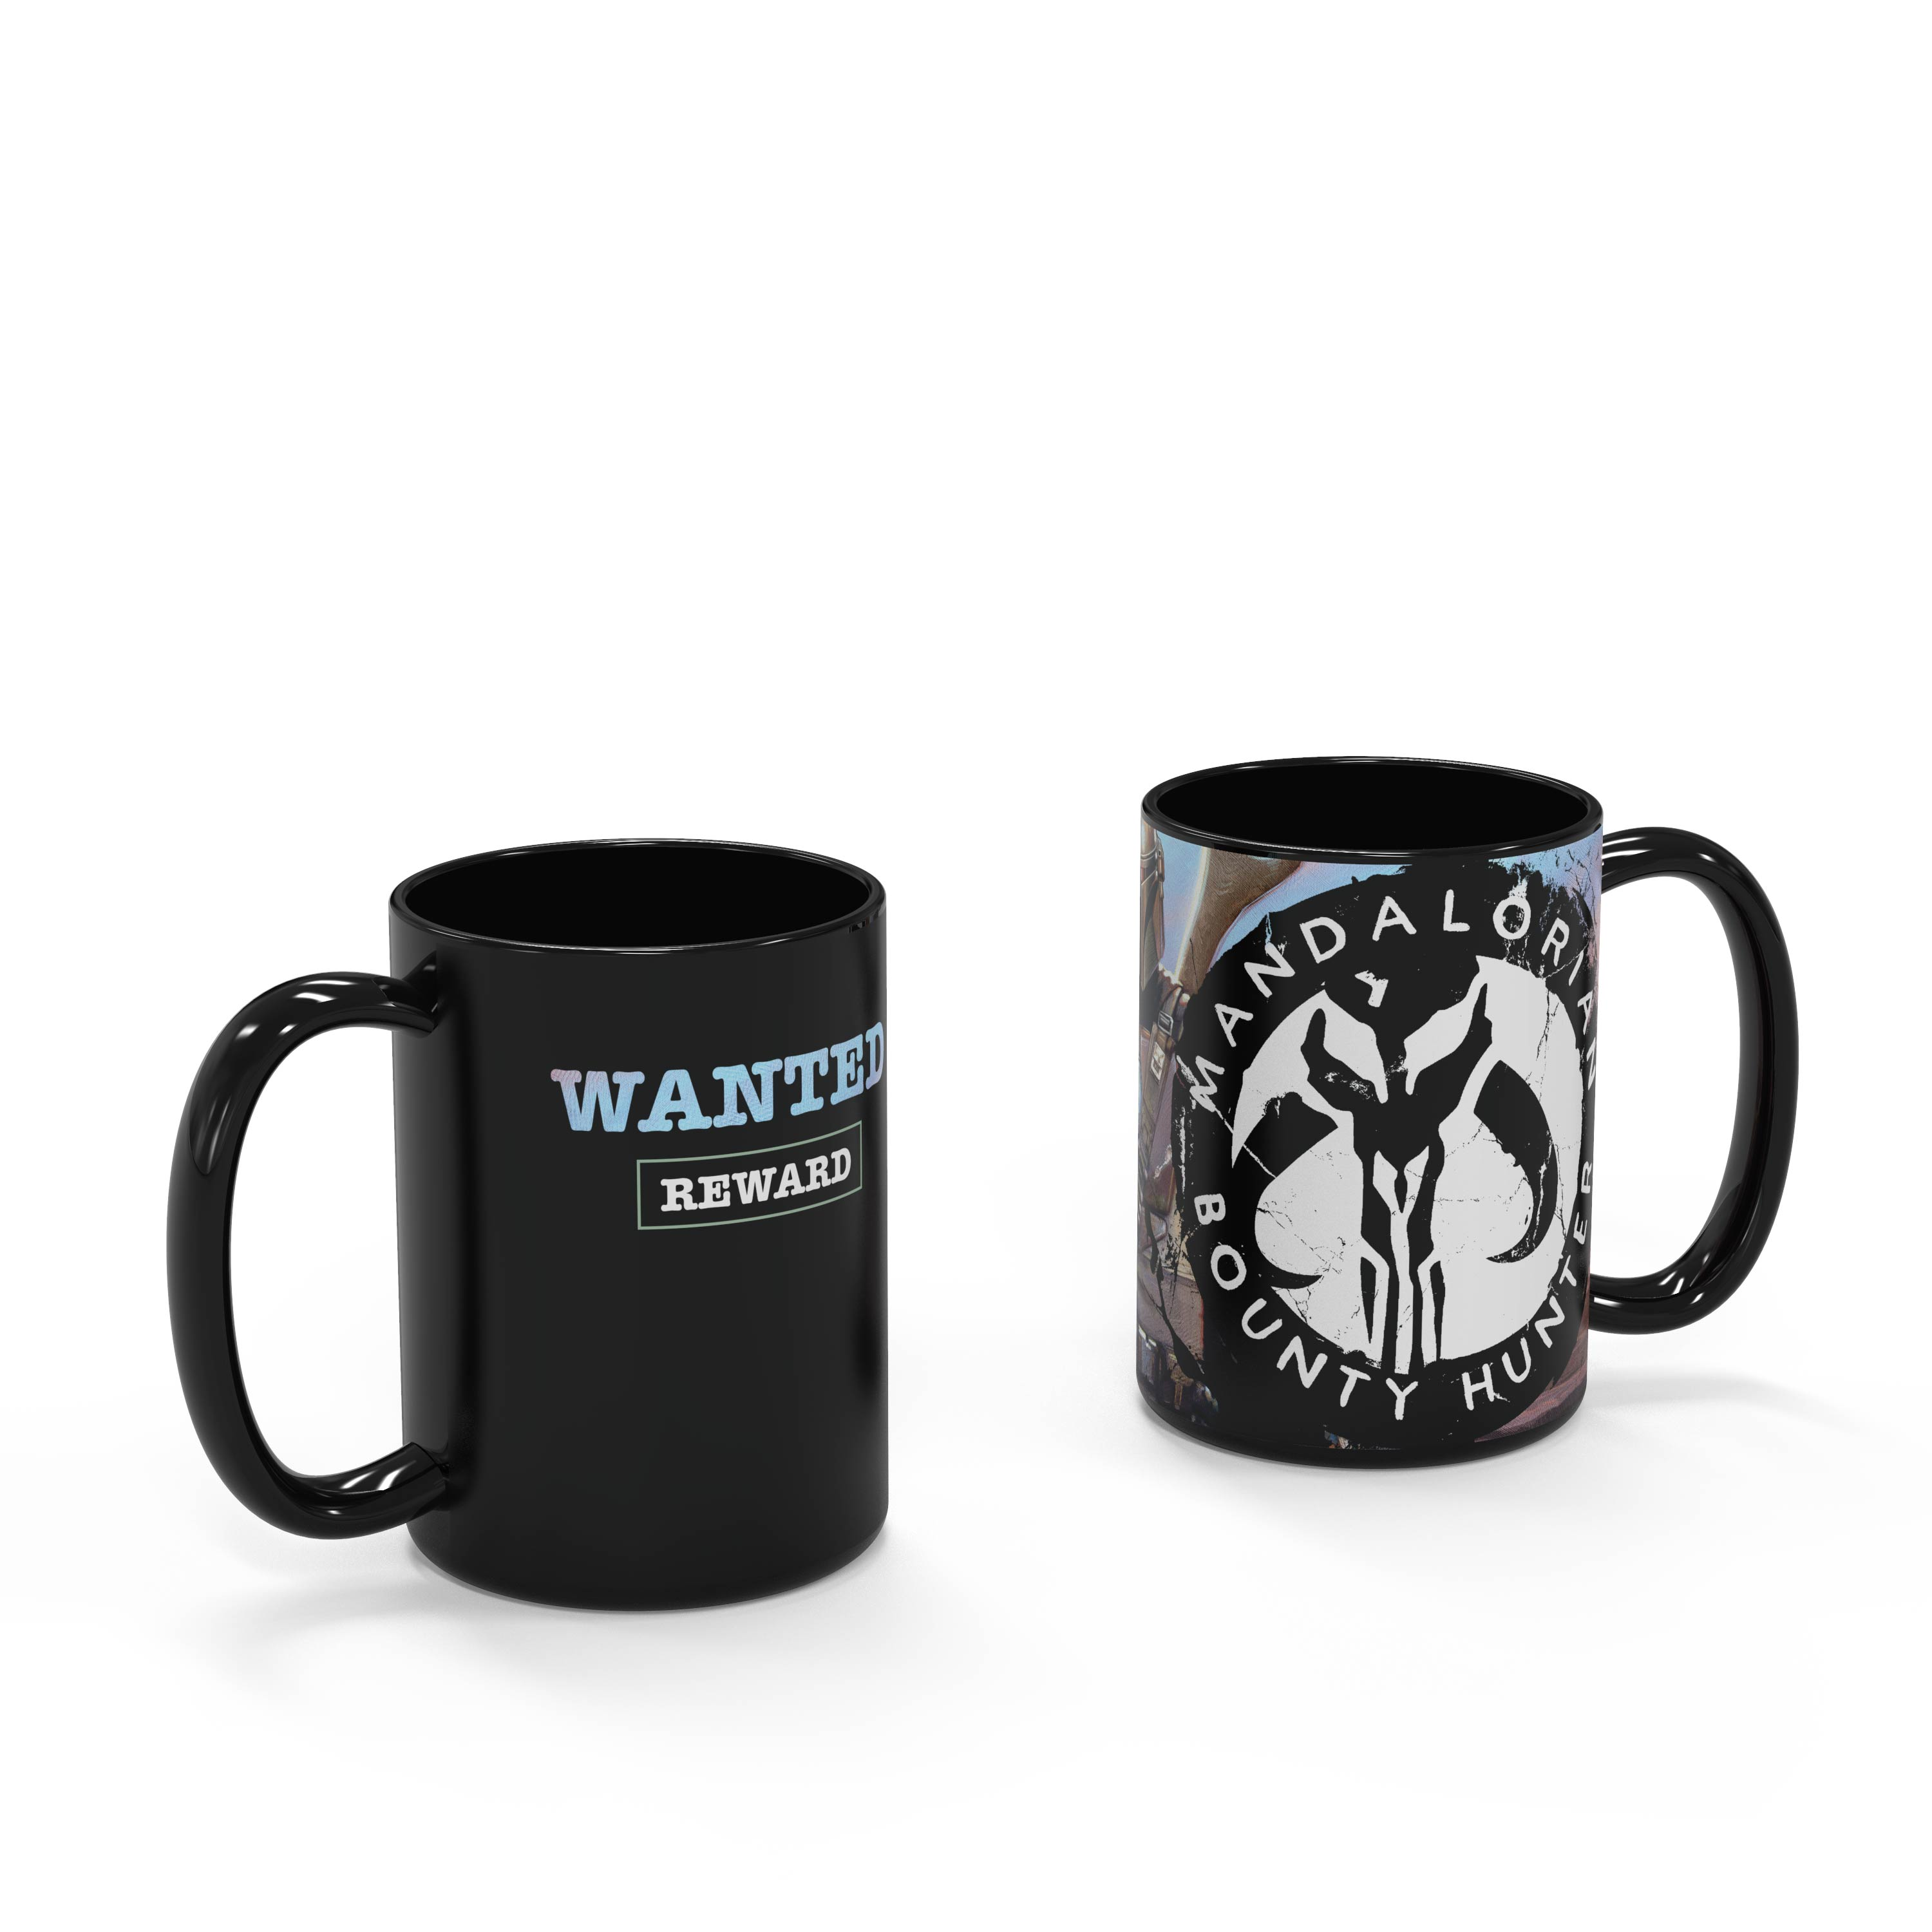 Star Wars: The Mandalorian 15 ounce Ceramic Coffee Mugs, The Mandalorian slideshow image 2